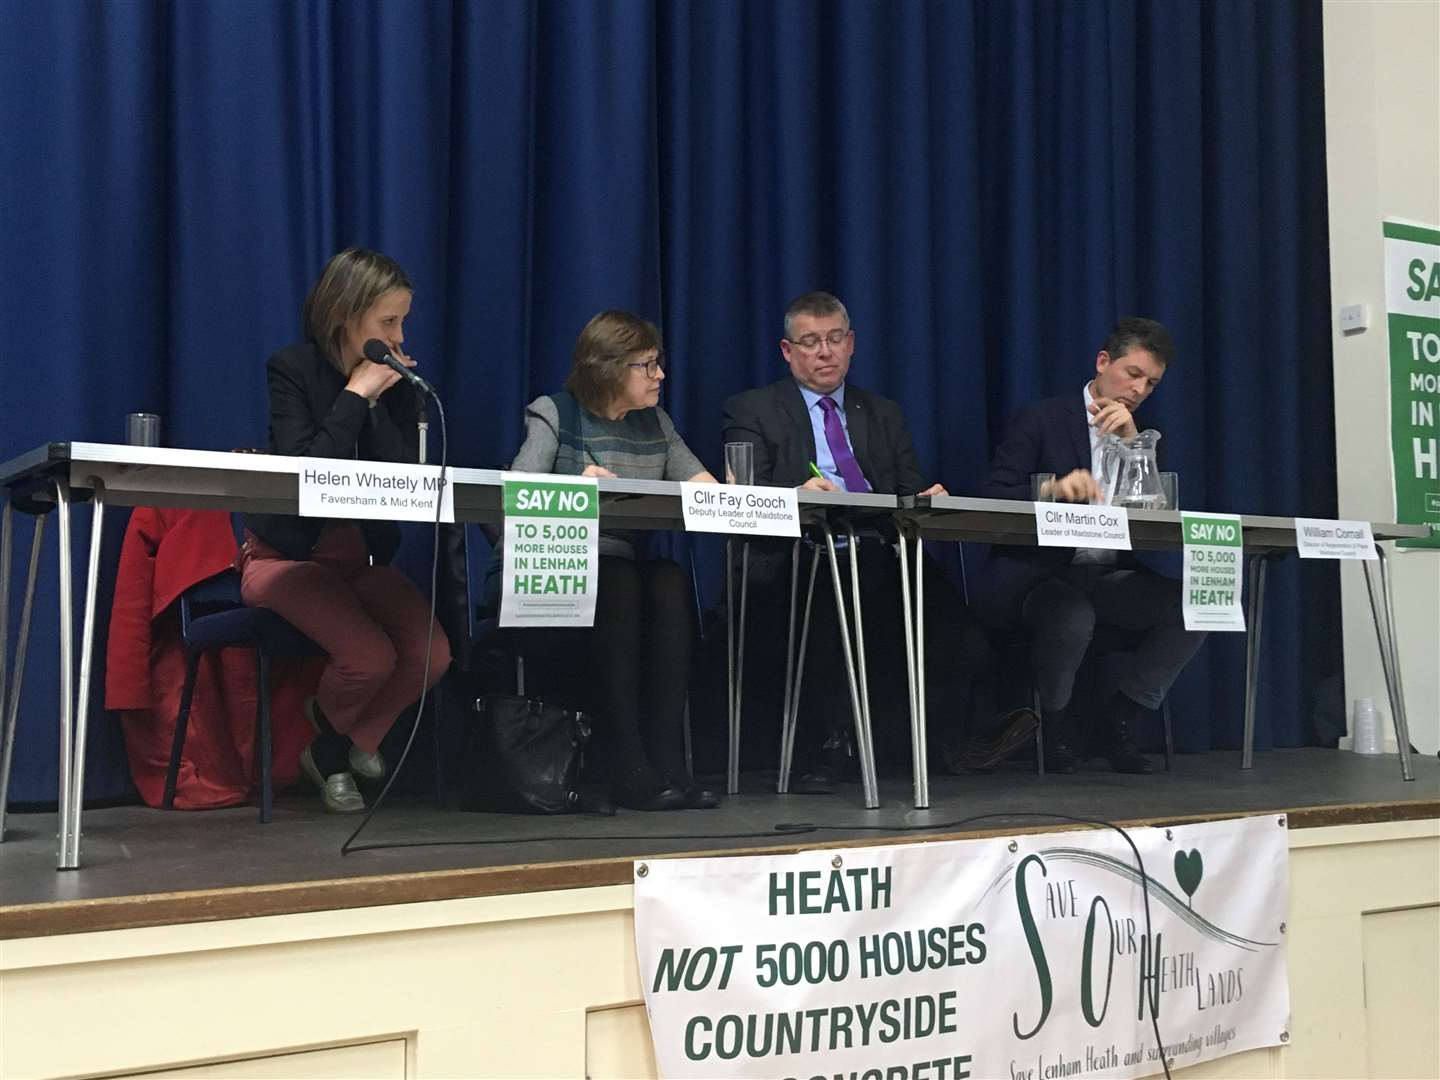 Helen Whately, Fay Gooch, Martin Cox and William Cornall discuss the Lenham Heath proposals (27538591)